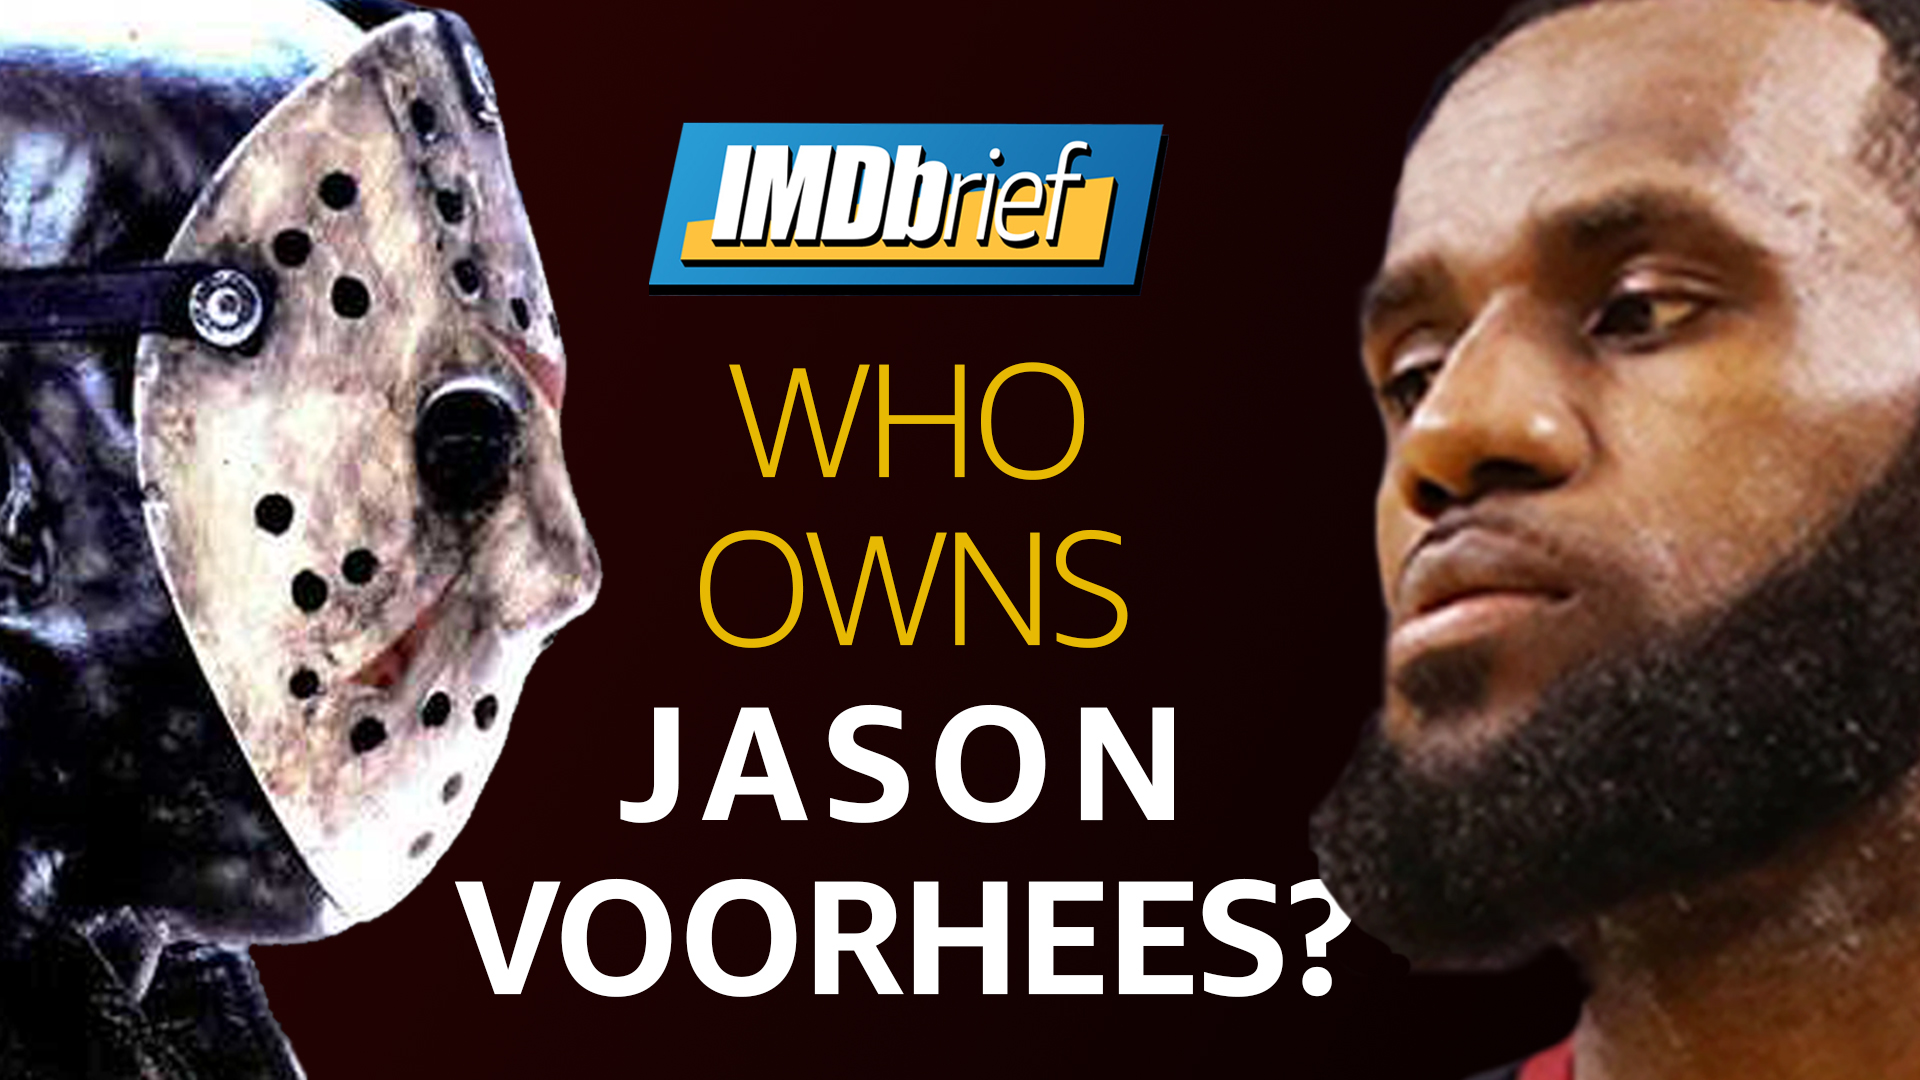 Imdbrief Who Owns Jason Lebron James Eyes Friday The 13th Reboot